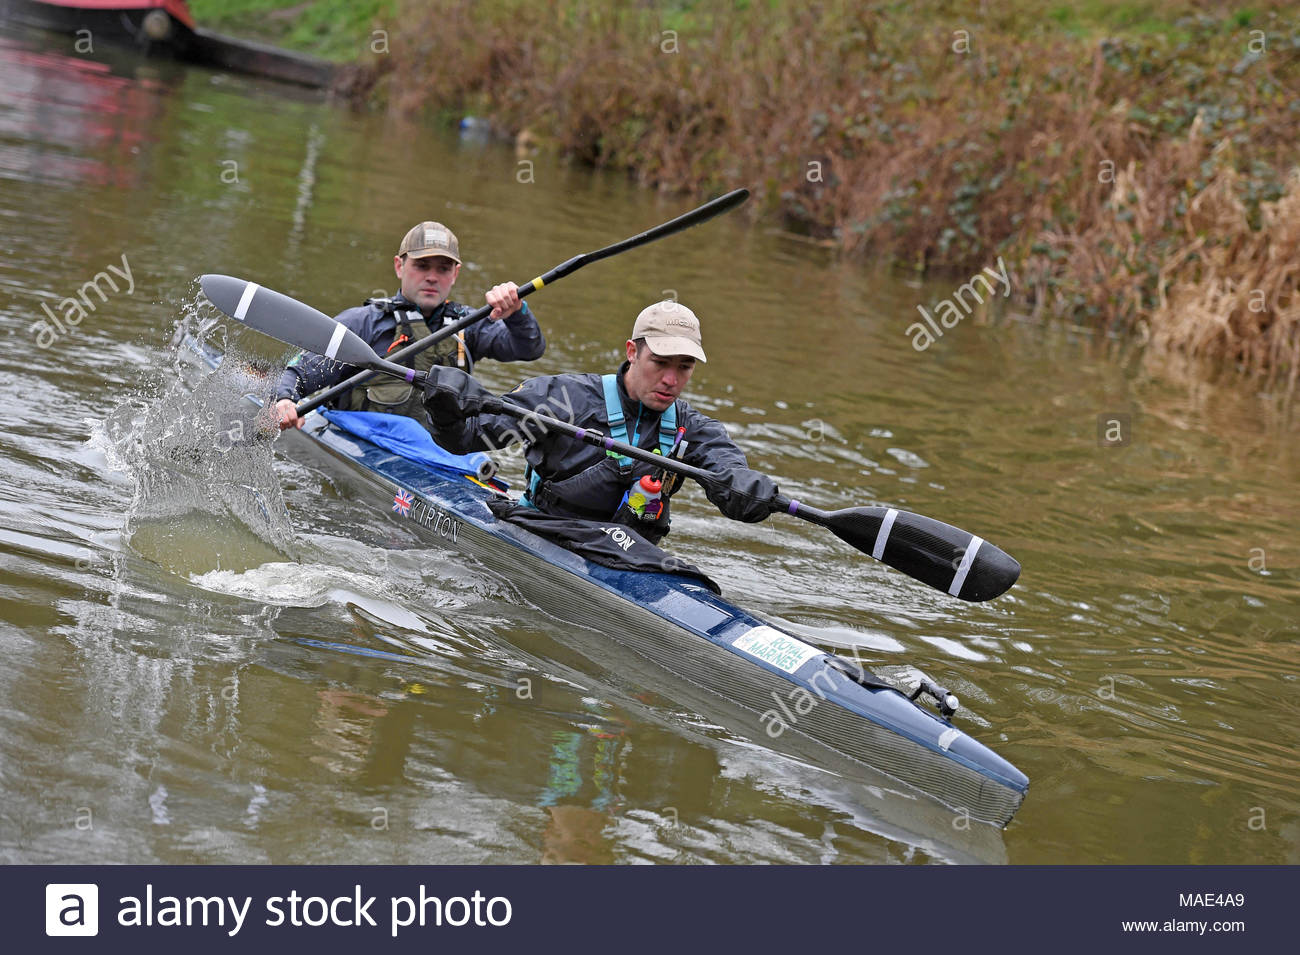 Devizes Wiltshire UK. 31st March 2018.  70th anniversary of the Devizes to Westminster canoe race over the Easter Weekend starting from Devizes Wharf. Credit: Diane Vose/Alamy live news - Stock Image